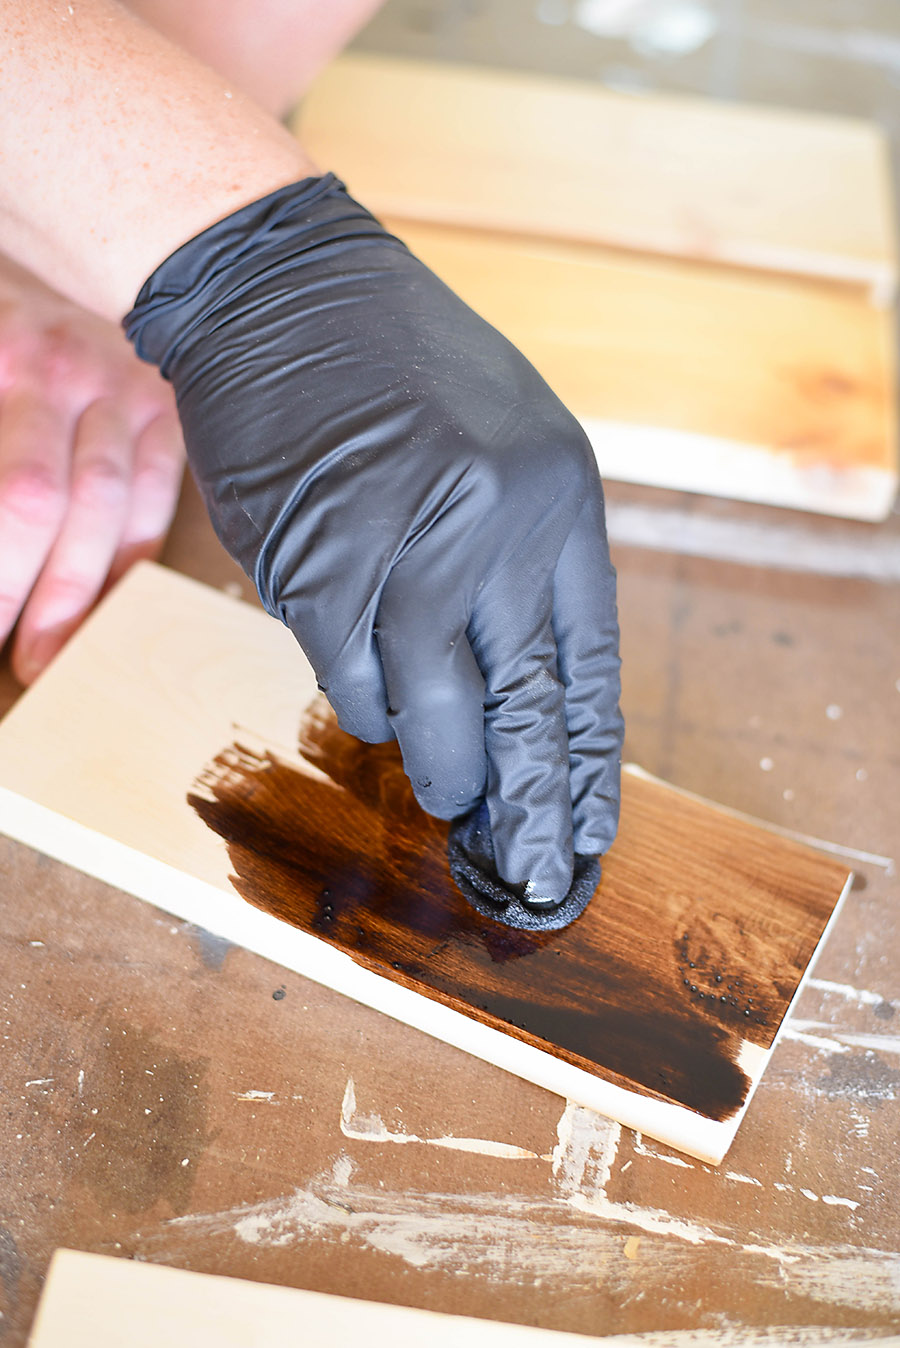 Applying Stain - How to Sand + Stain Wood - Our Handcrafted Life